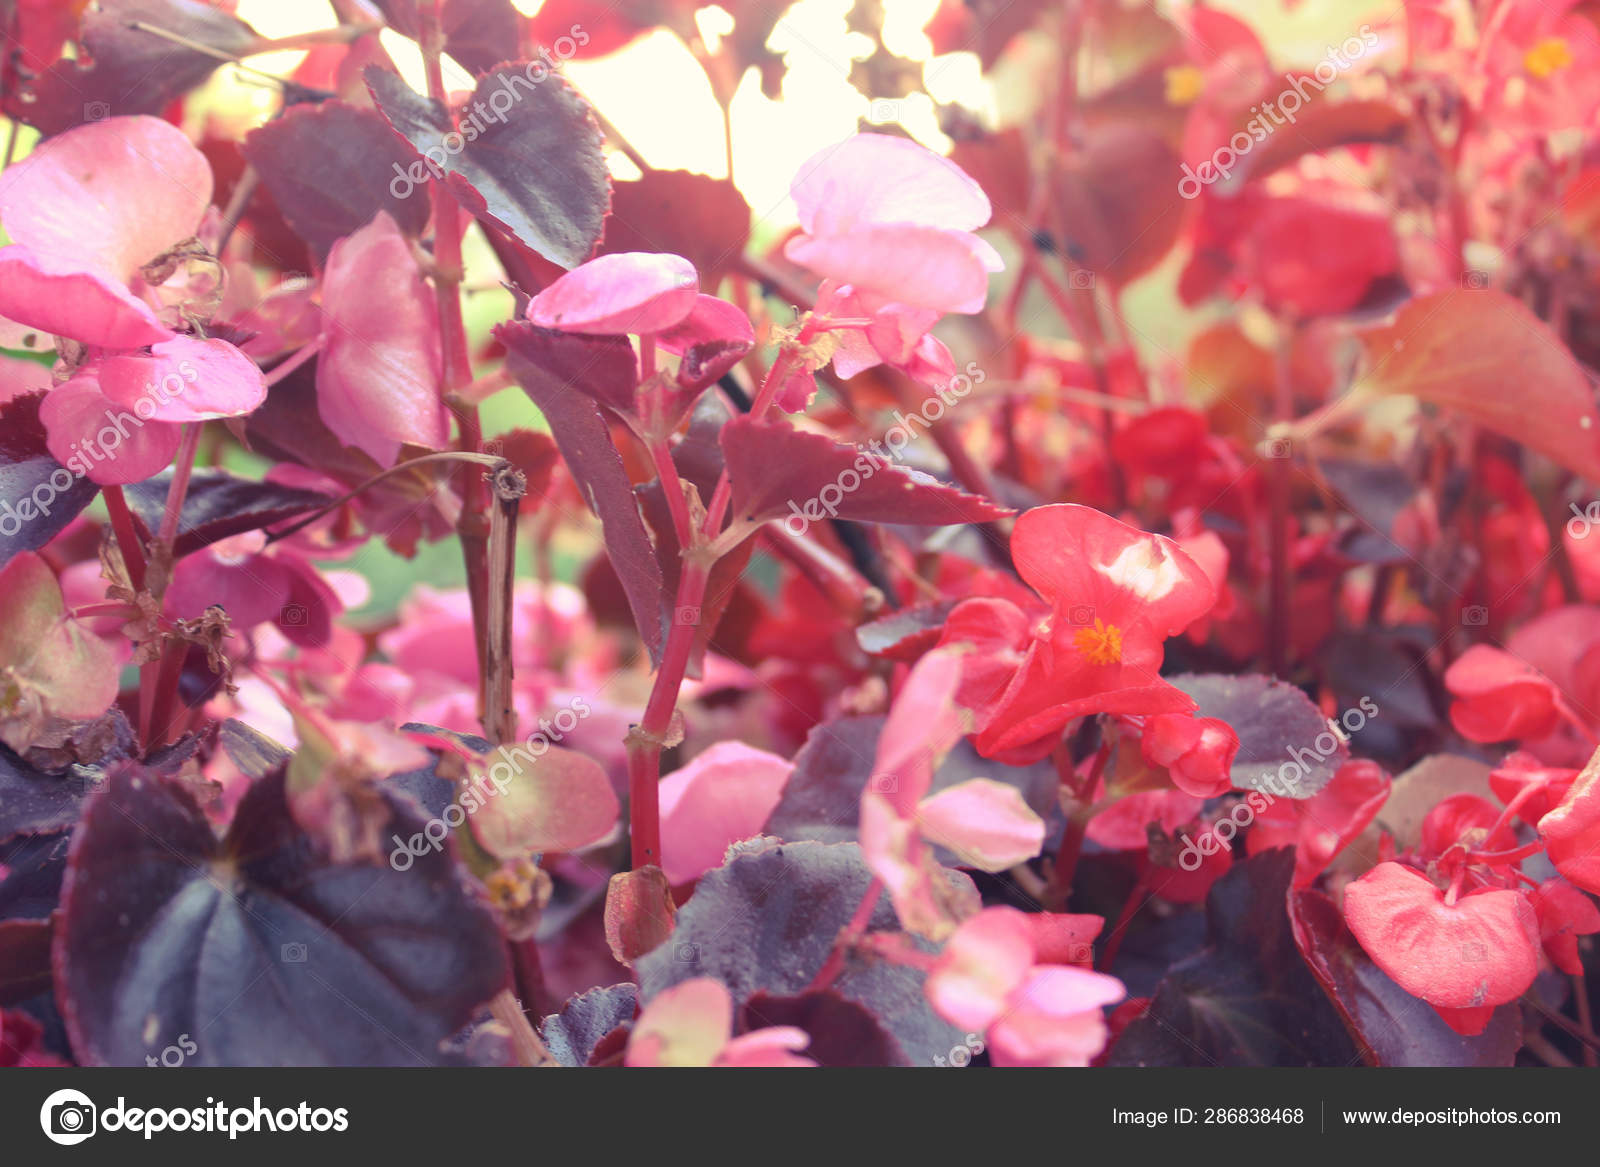 Background Of Beautiful Natural Red And Pink Begonia Flowers